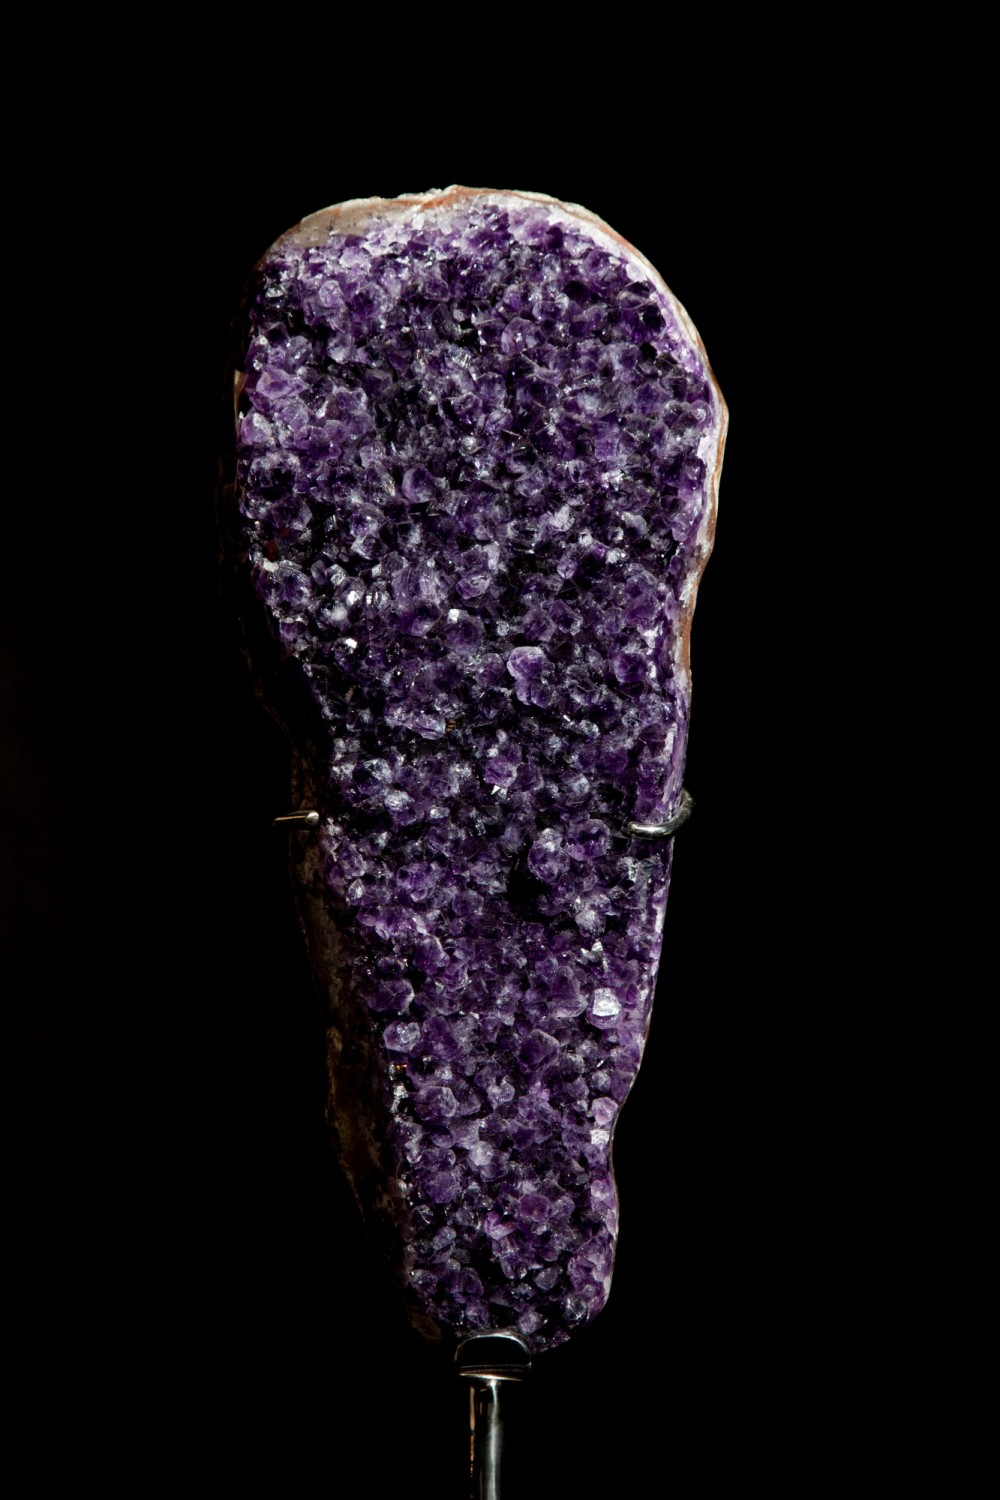 29. amethyst on a stand 2